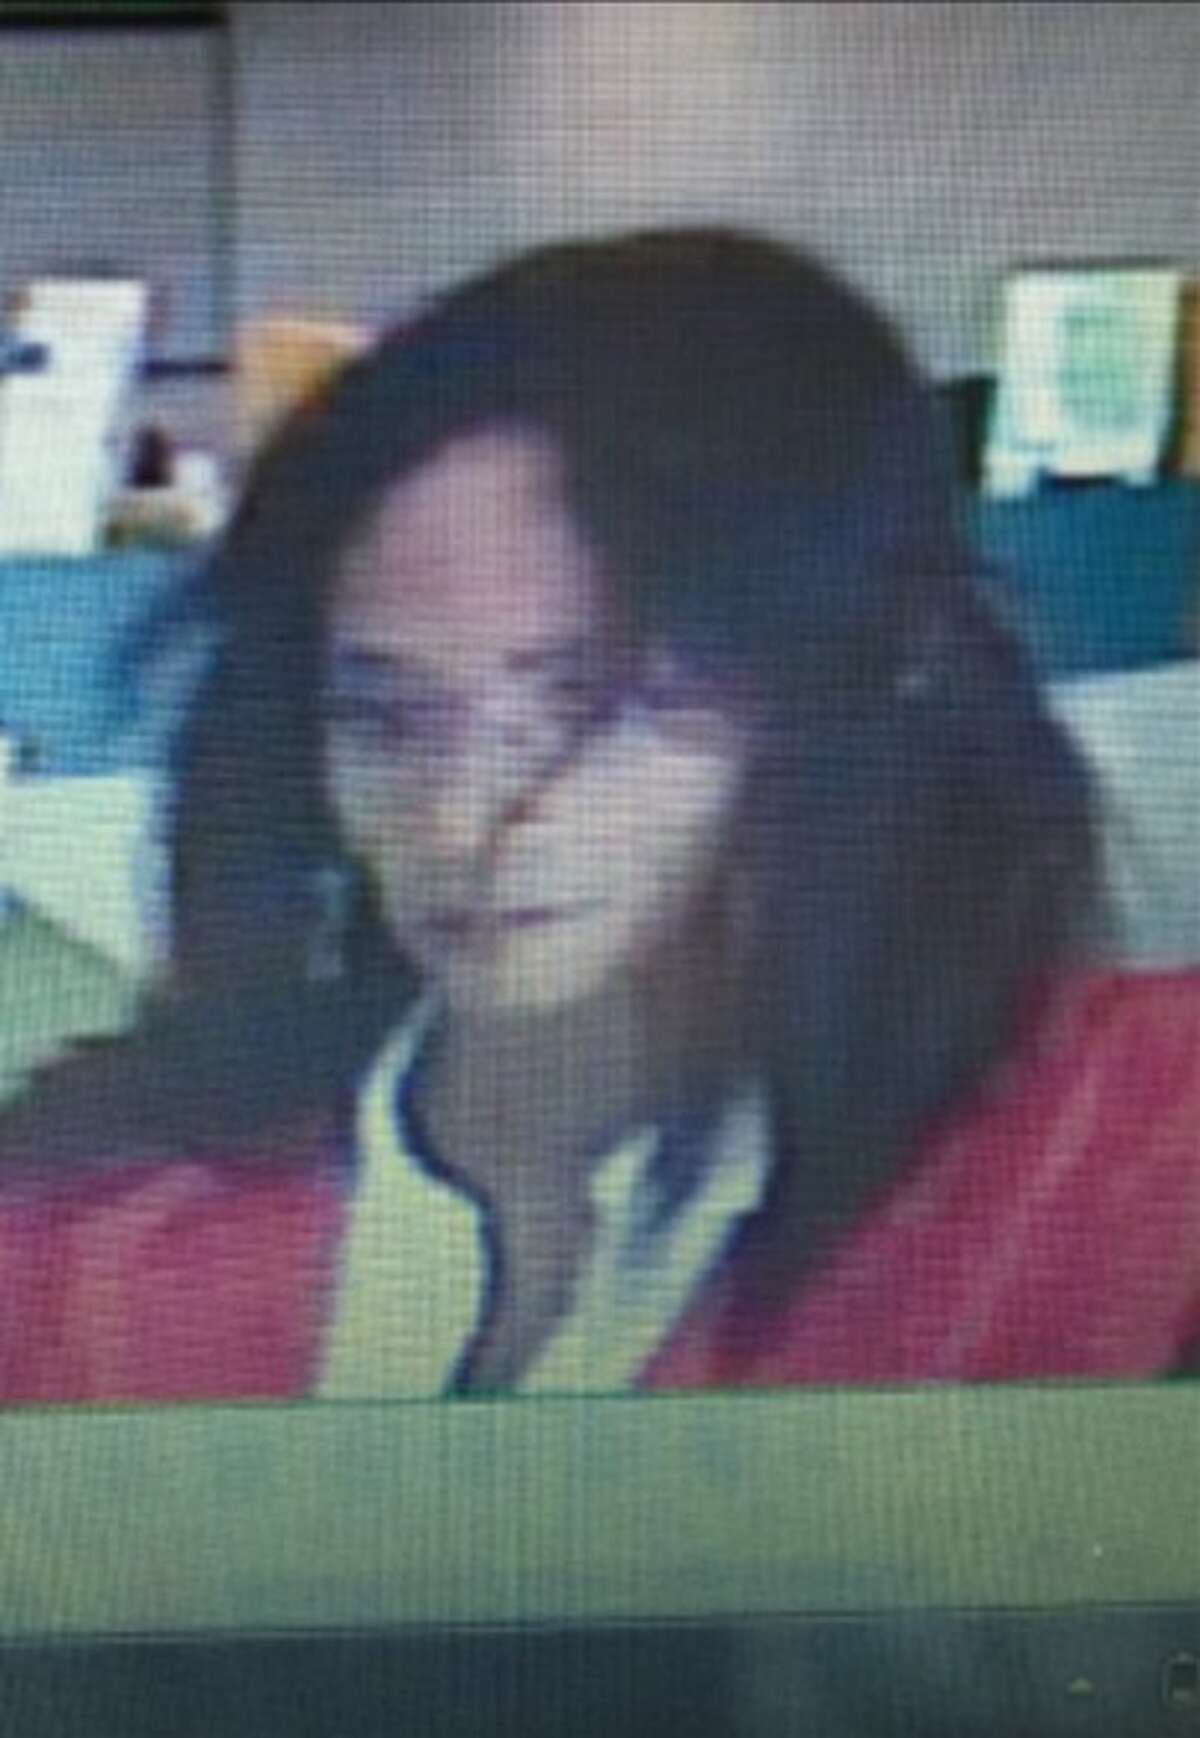 Cy-FairInvestigators are looking for two men accused of robbing two title loan stores in the Cy-Fair area on Tuesday, May 2, 2017. One of the men was dressed as a woman during the robberies.